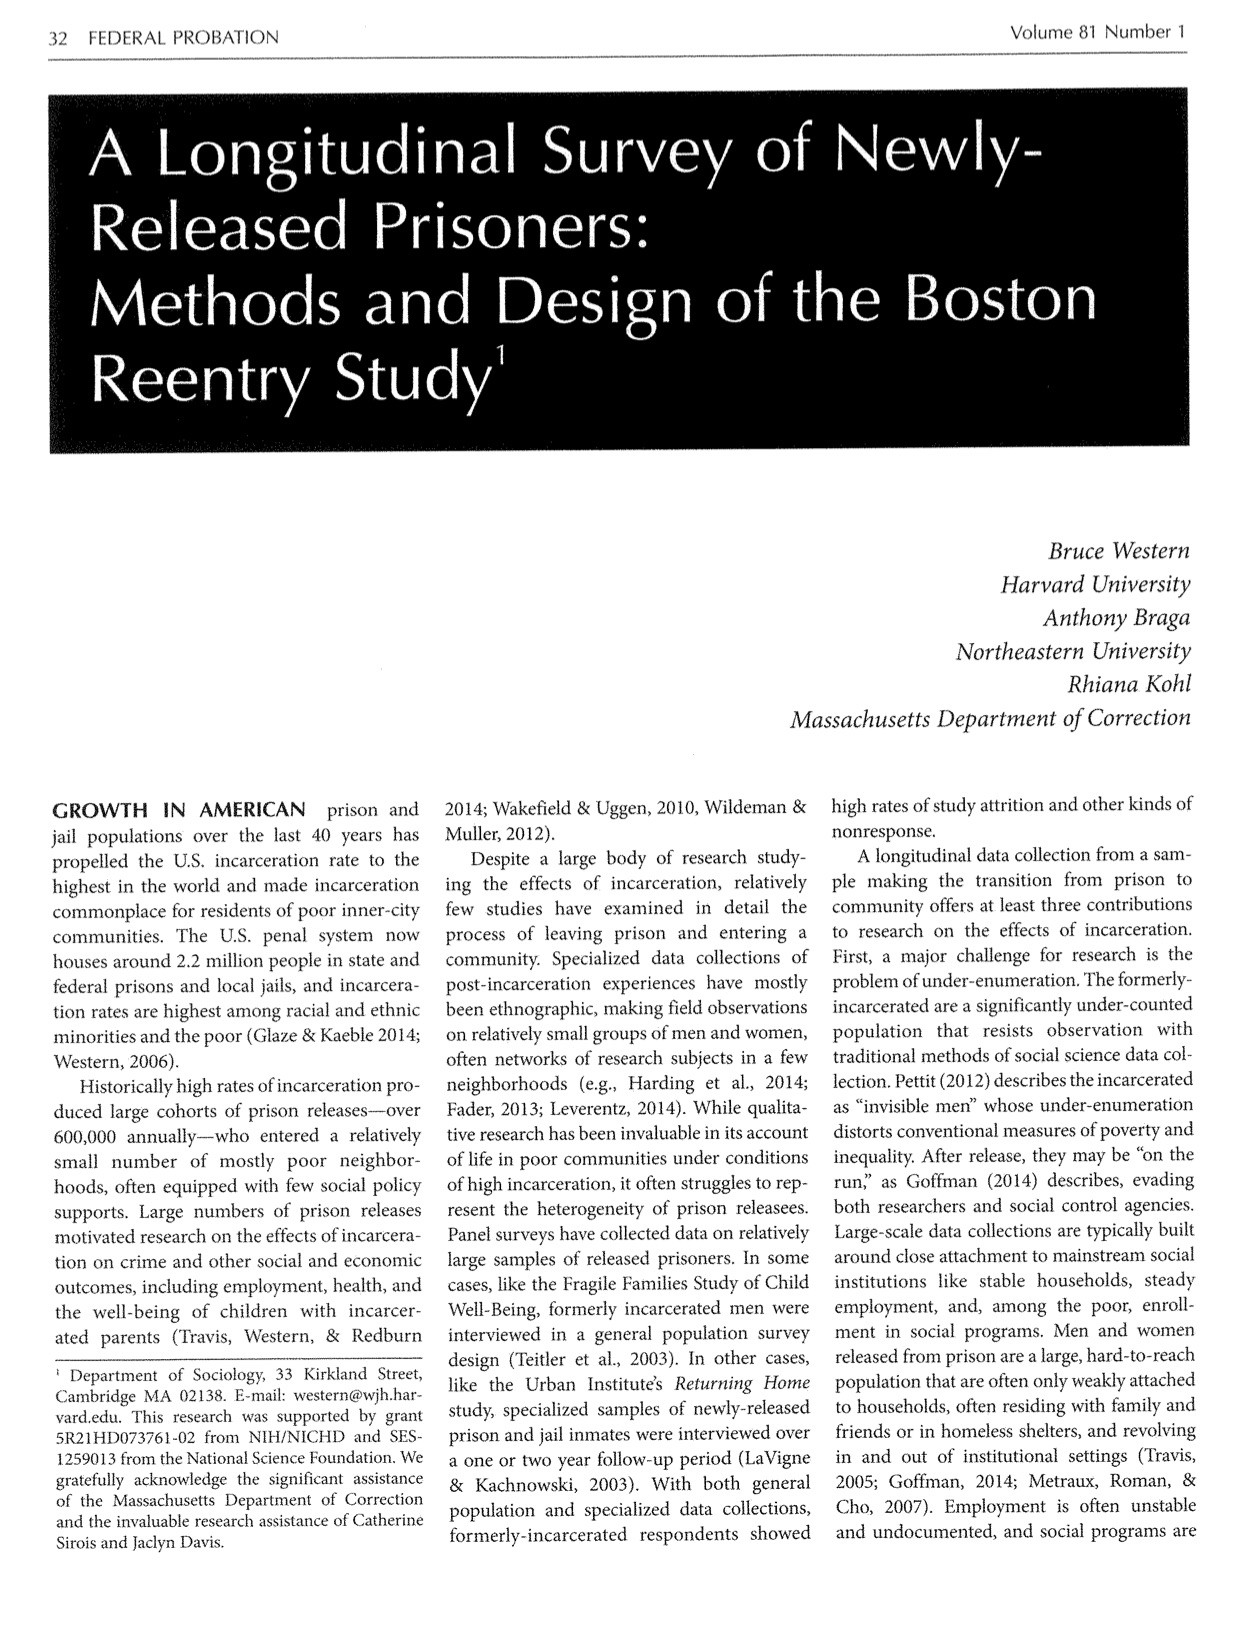 A Longitudinal Survey of Newly-Released Prisoners: Methods and Design of the Boston Reentry Study